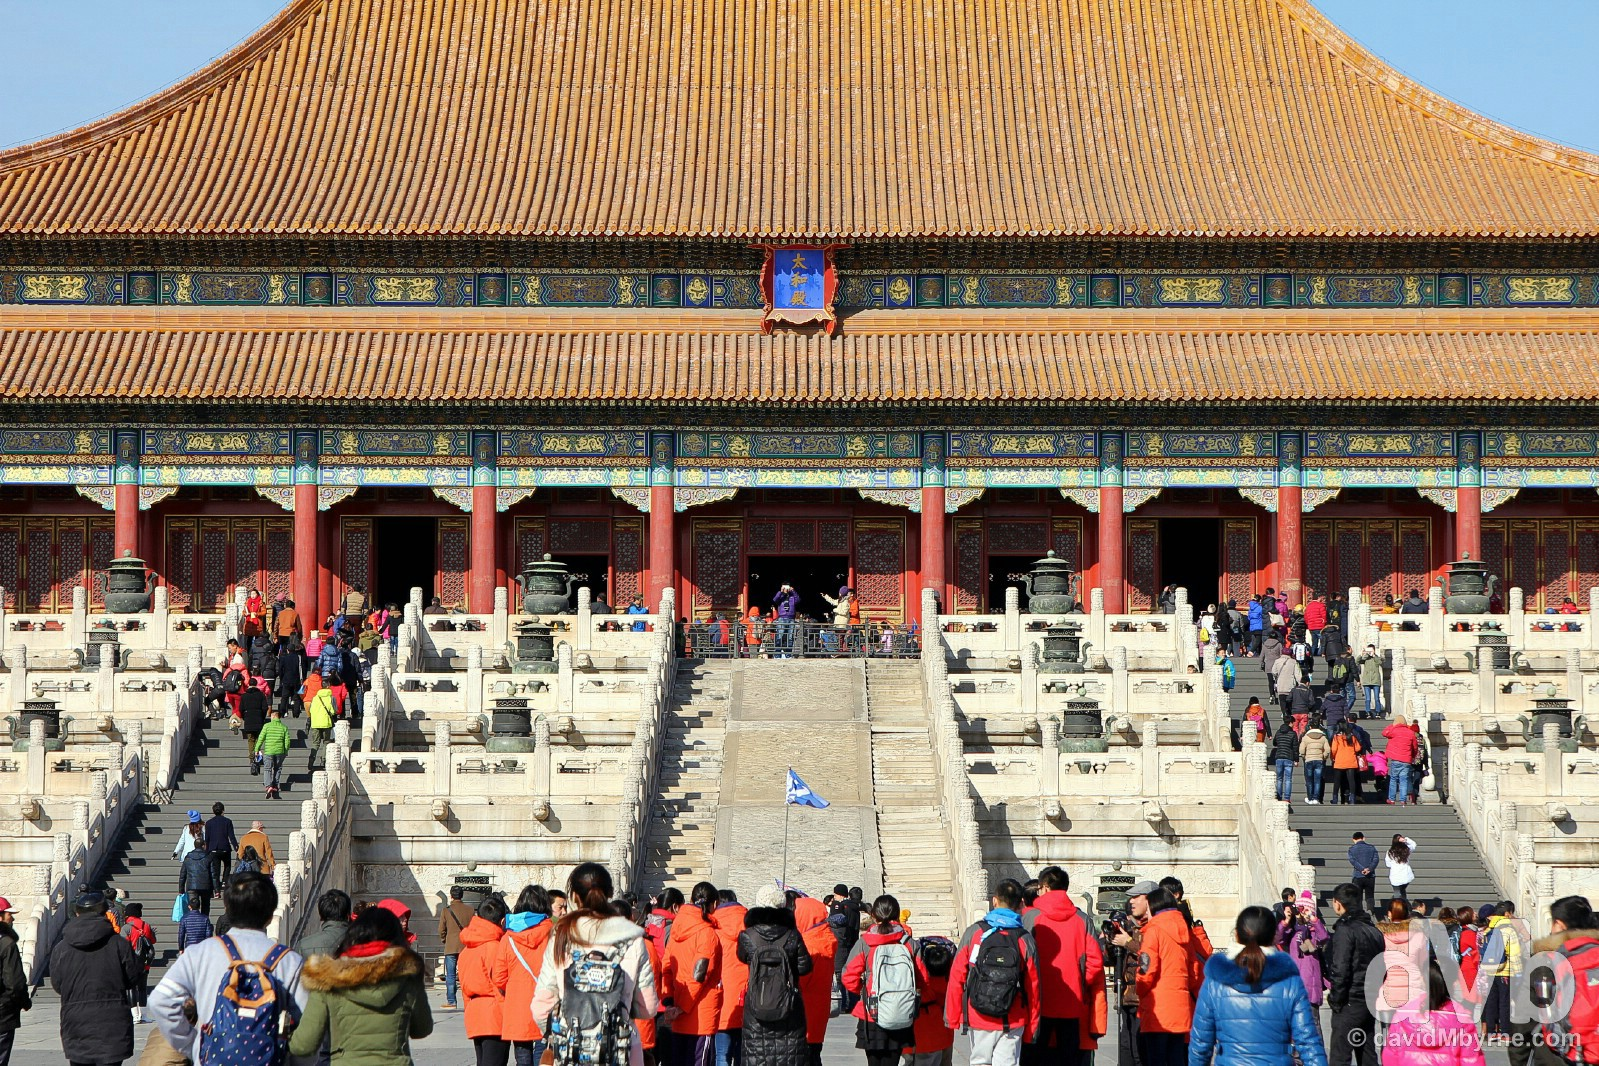 Tai He Dian (Hall of Supreme Harmony) in the Place Museum, a.k.a. The Forbidden City, the first & main hall of the three major halls of the outer court of the Forbidden City, in Beijing, China. February 4, 2015.